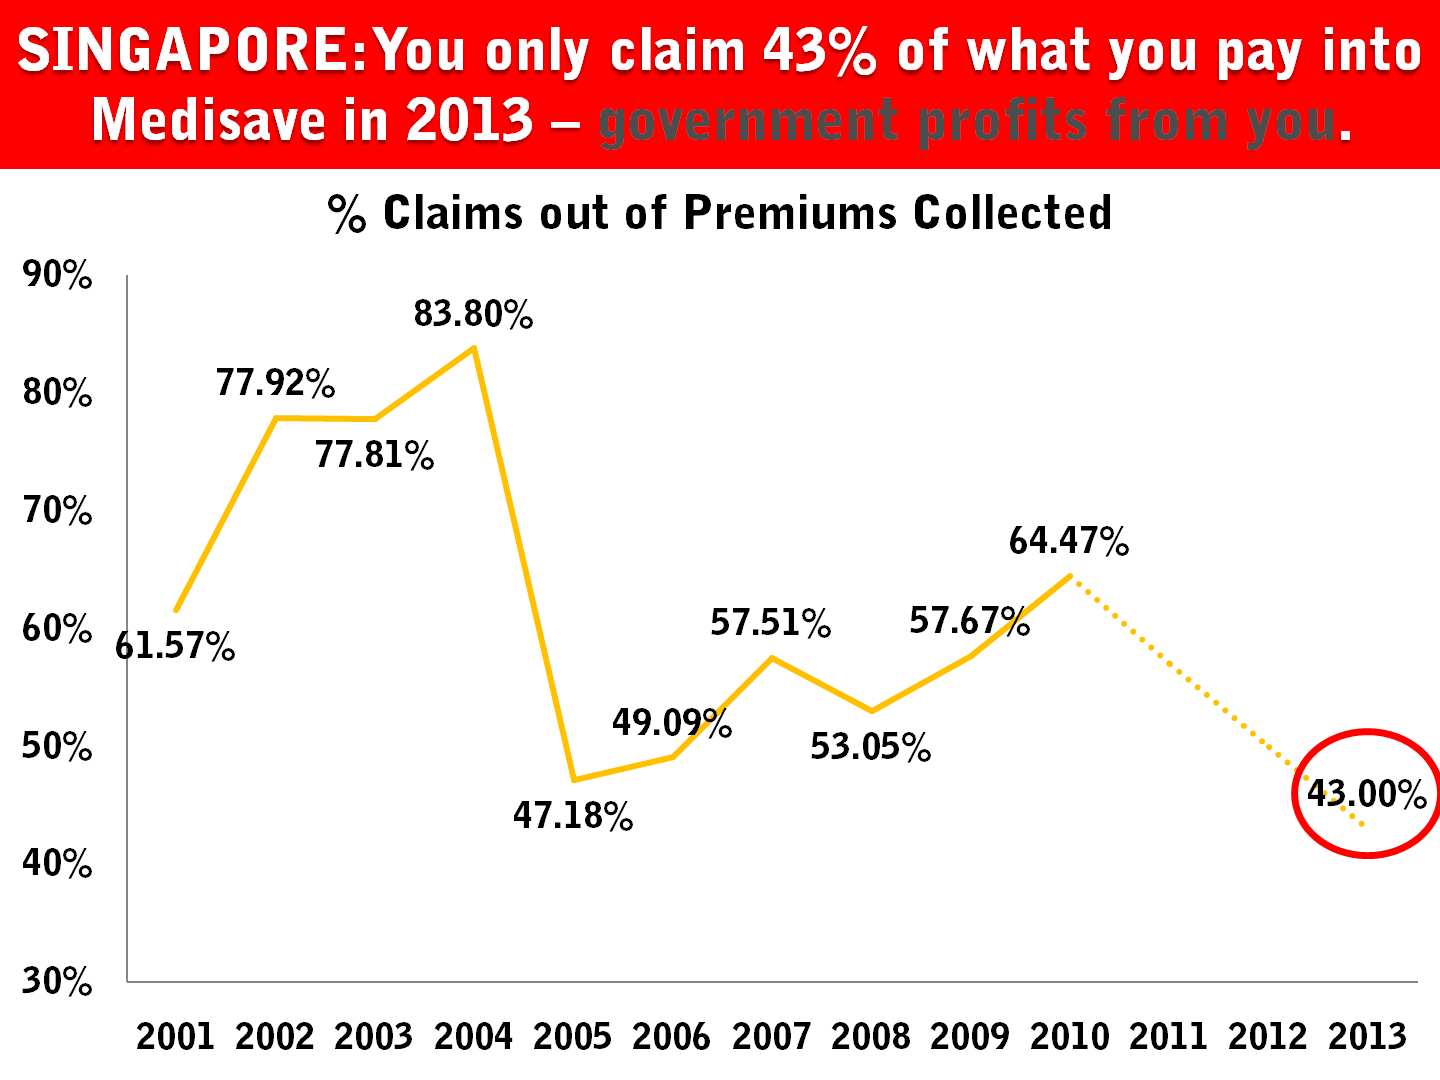 15.5 Singapore Contribution Claim Health Insurance.png